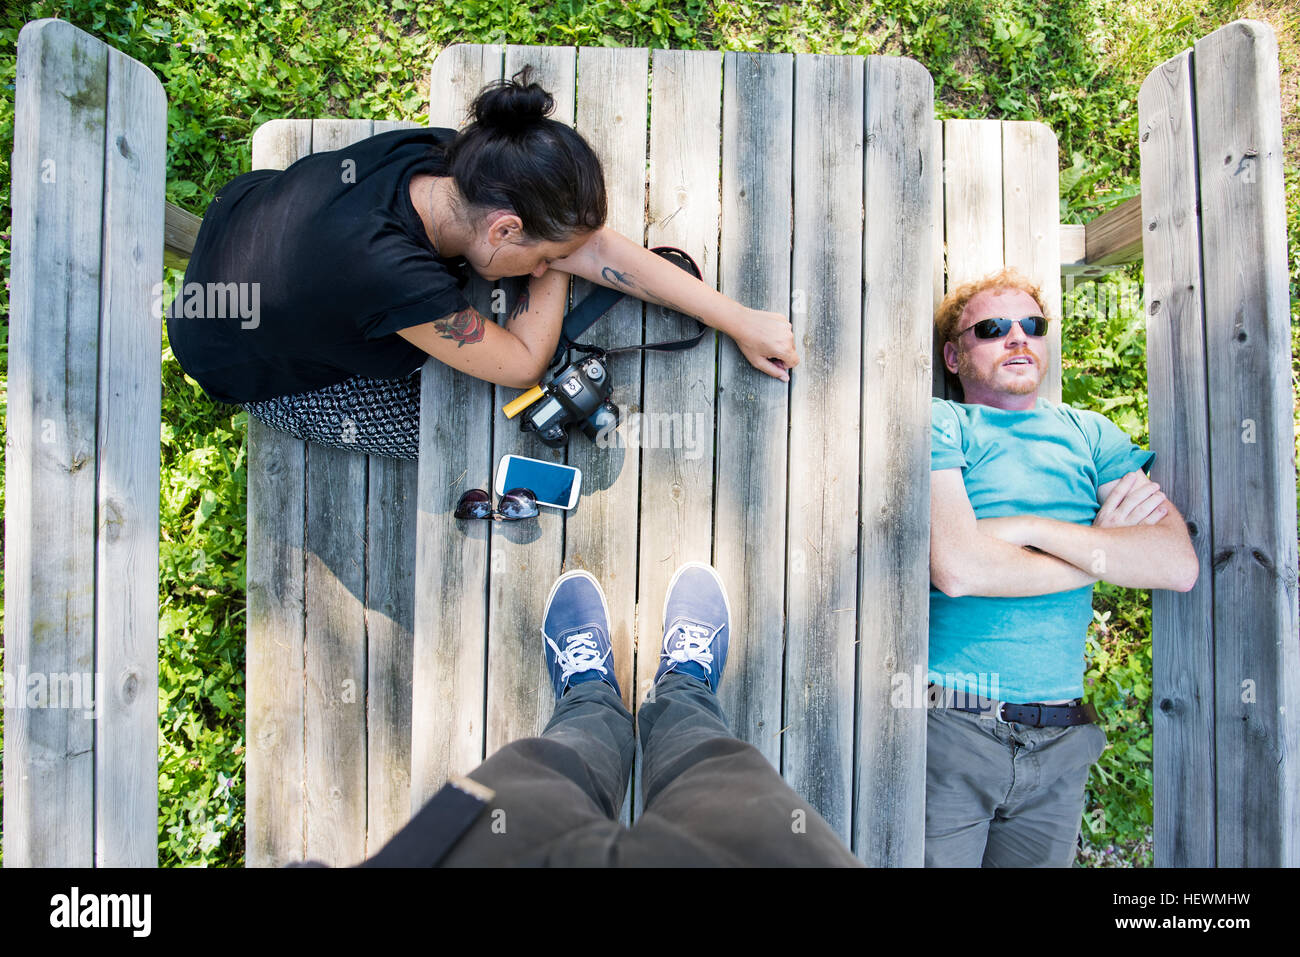 Overhead point of view shot of couple resting on picnic bench - Stock Image